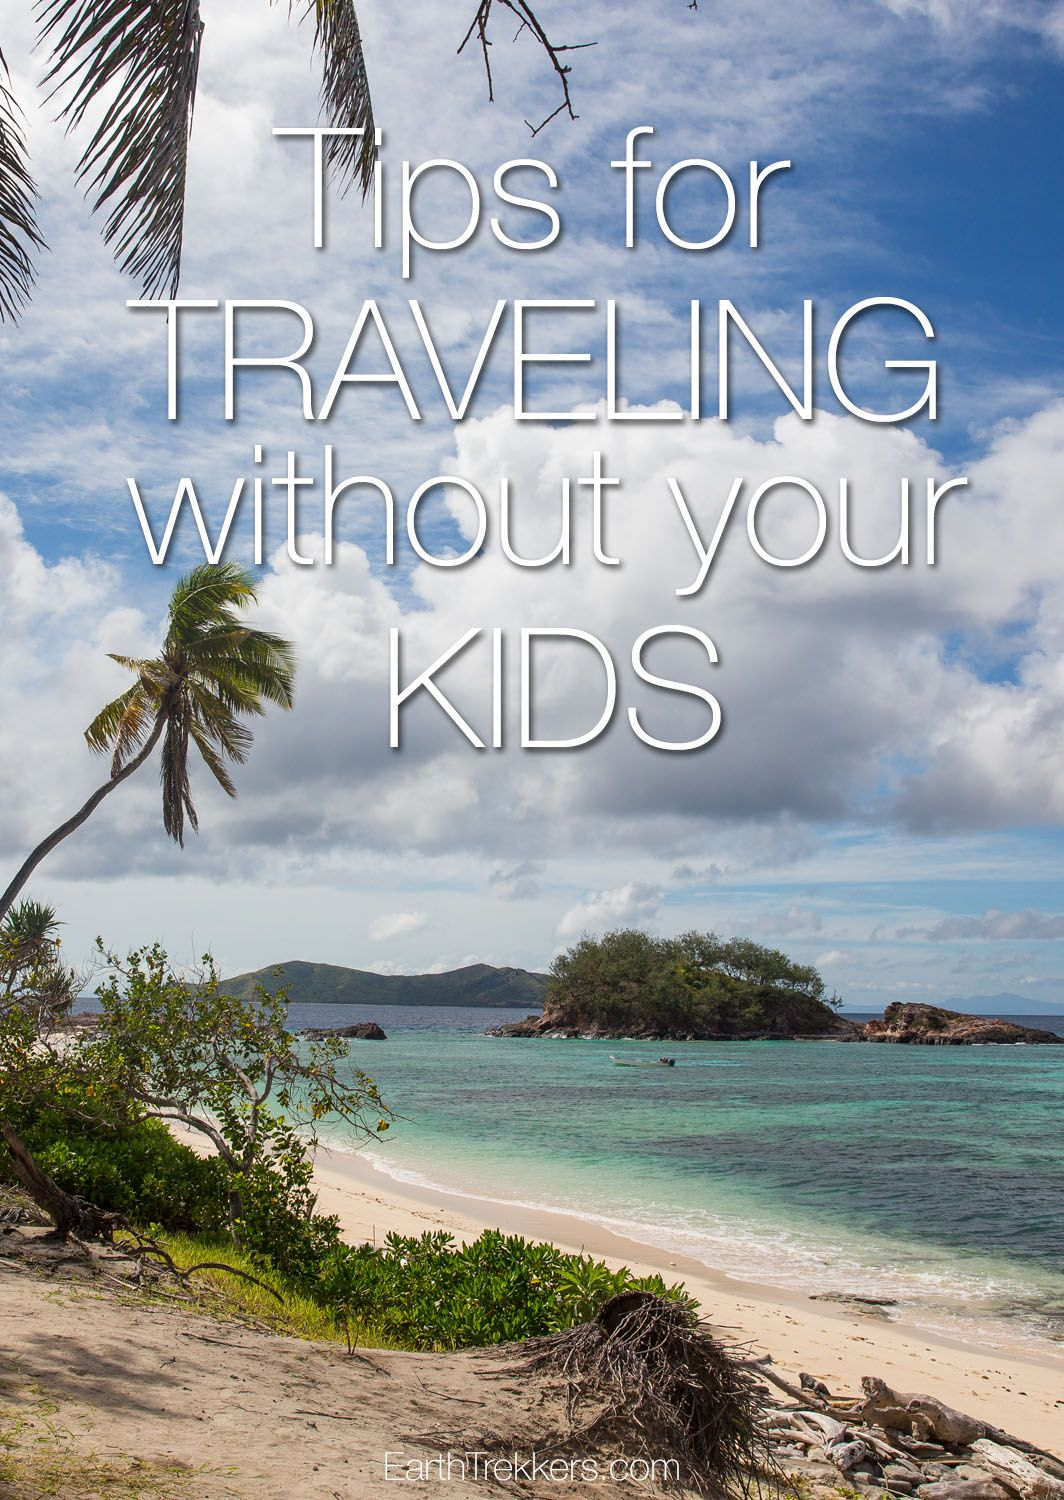 Travel Advice: Tips for Traveling without your kids